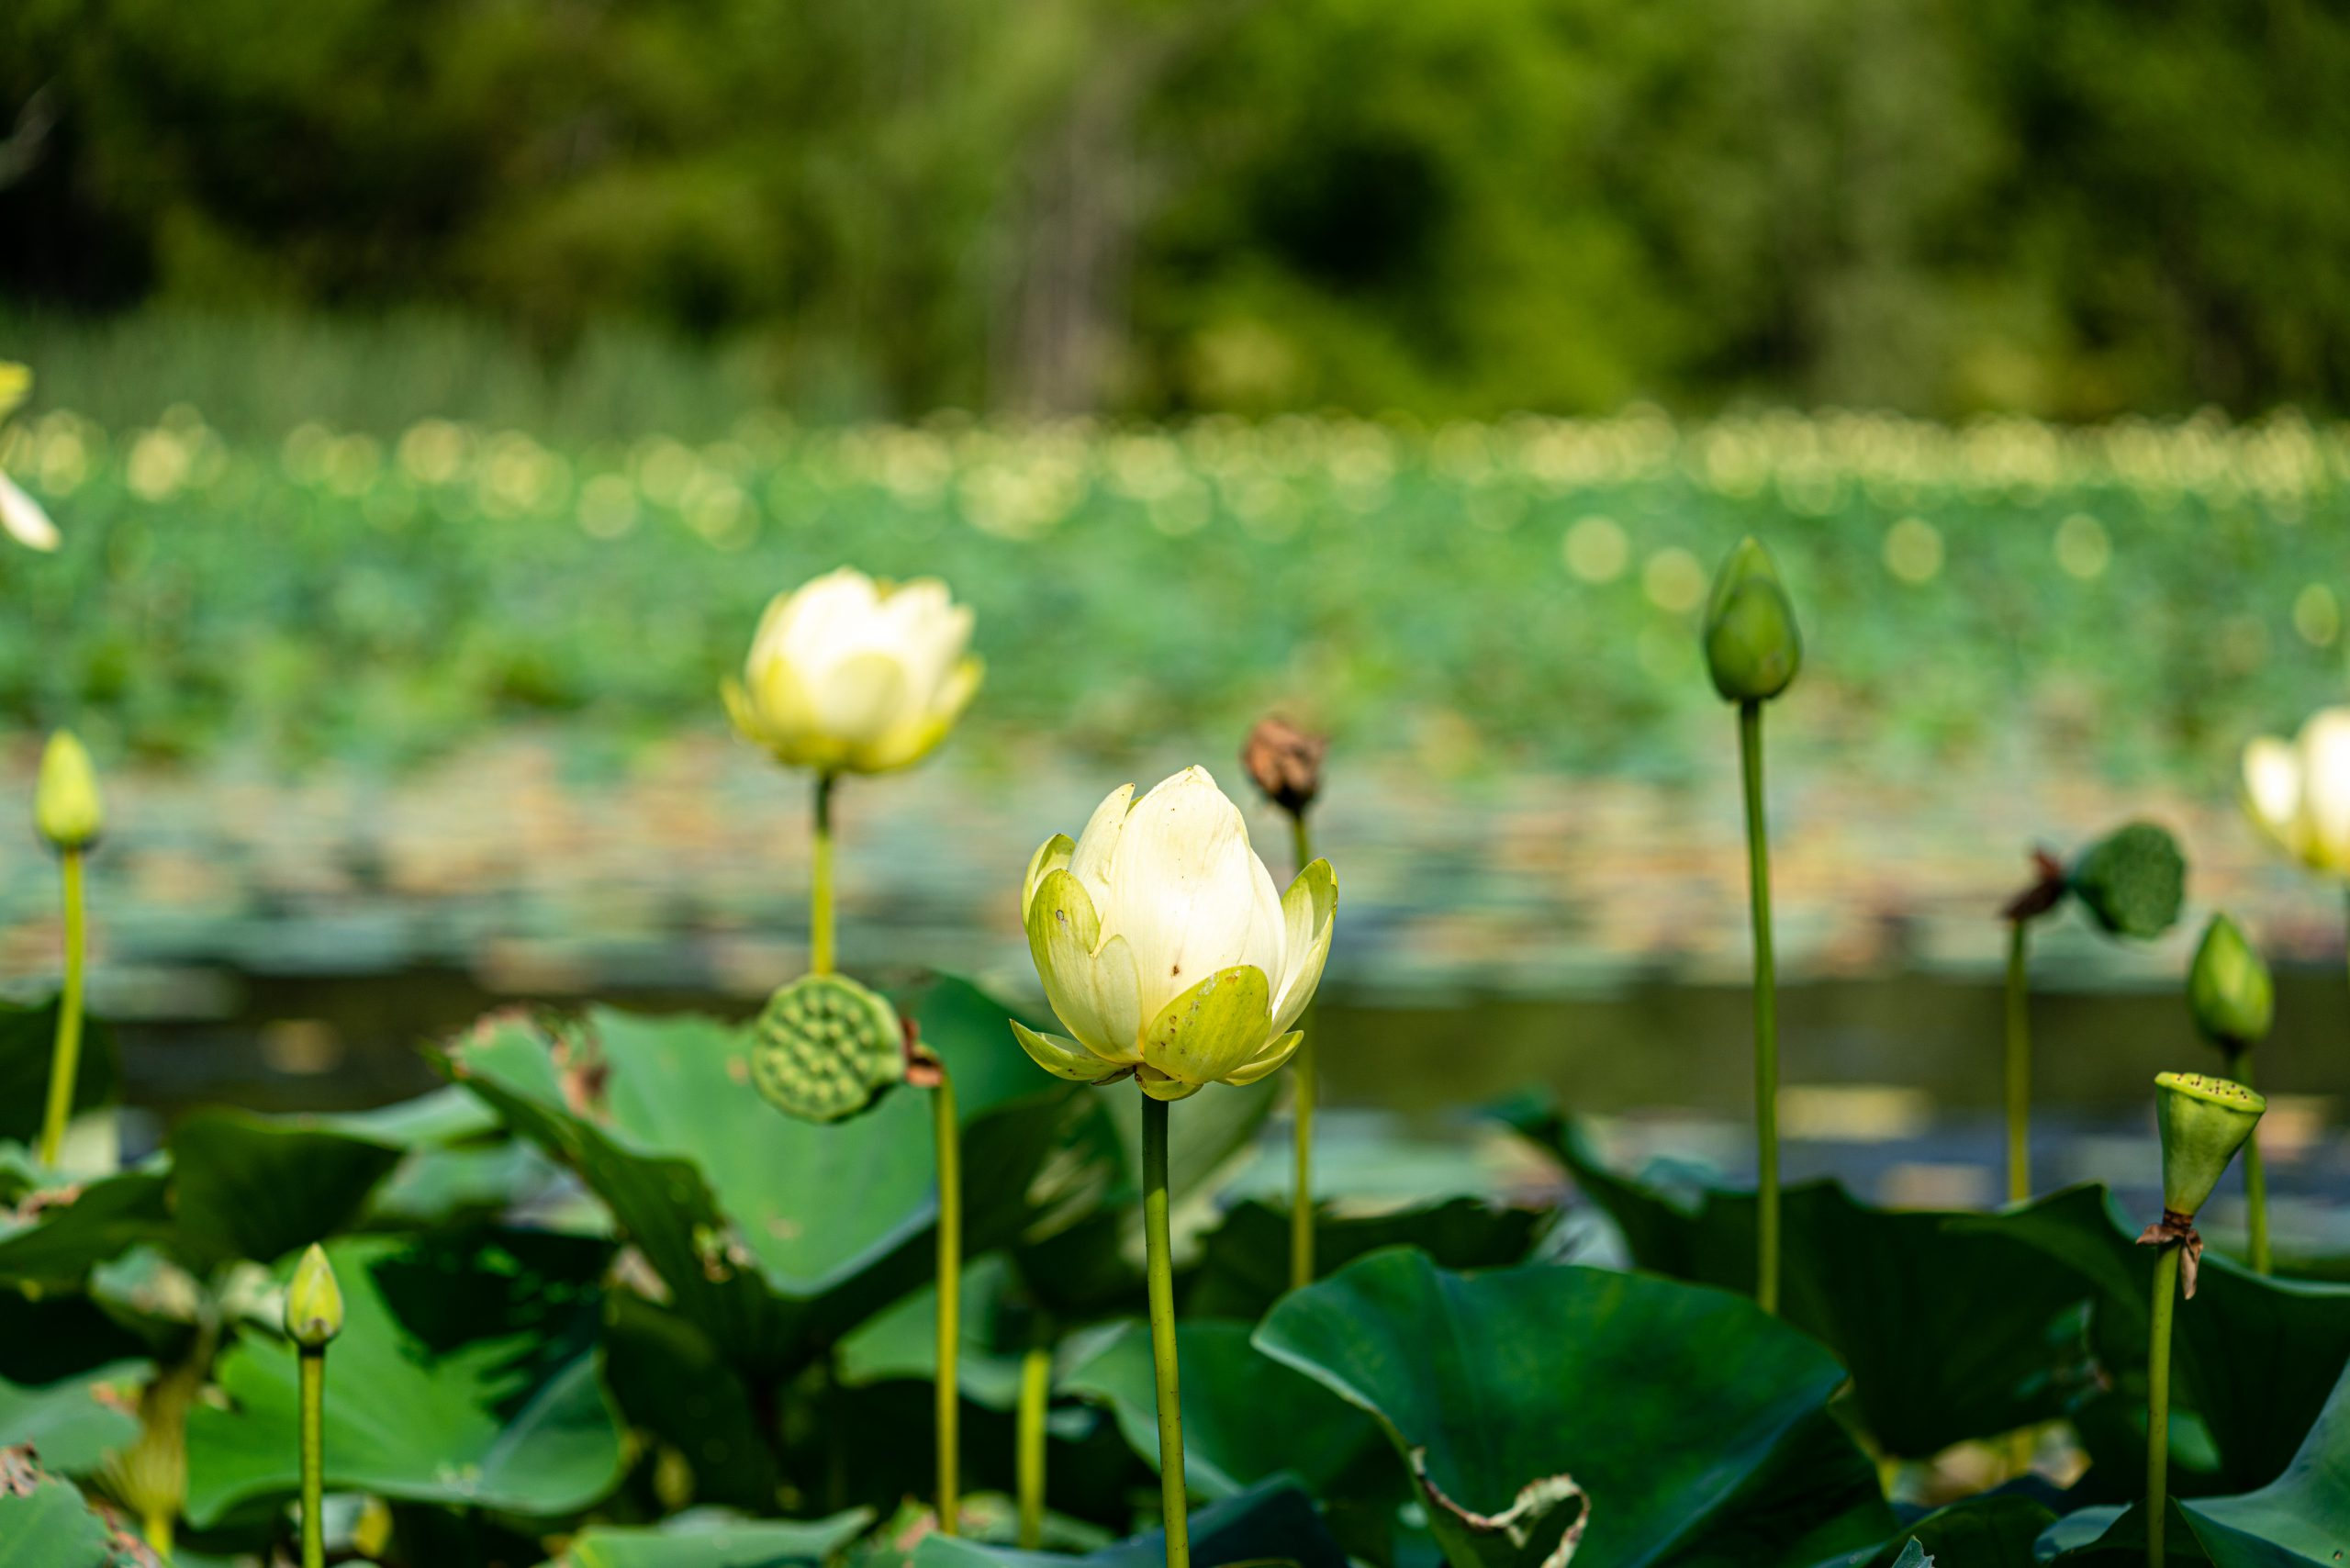 Lotus flowers and lotus pads cover the surface of a pond.